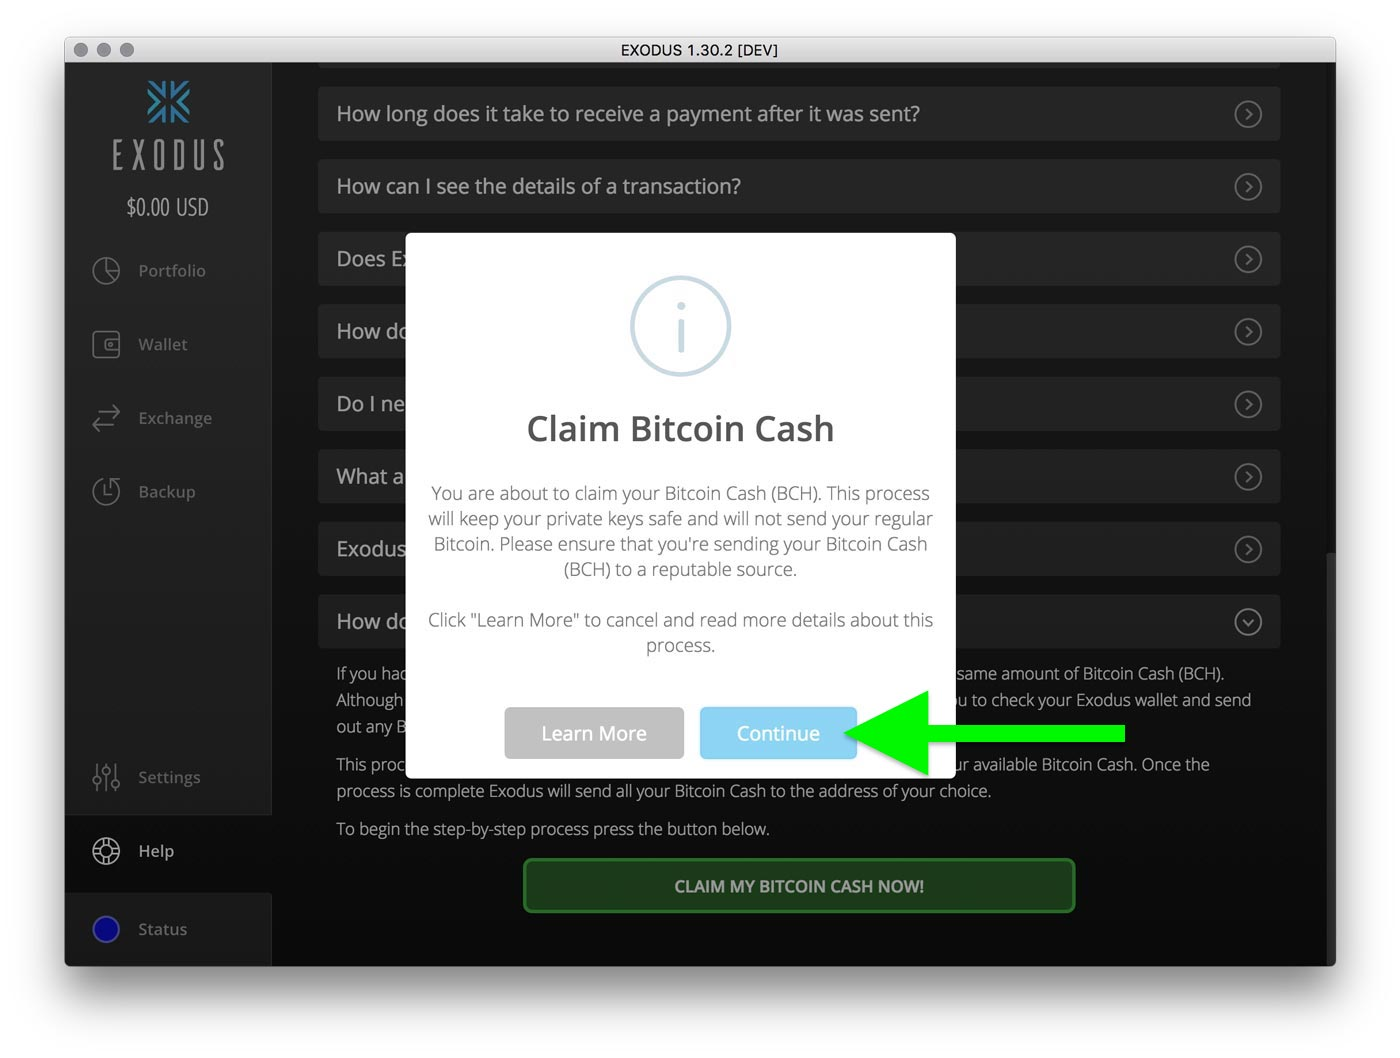 How do i claim bitcoin cash exodus knowledge base step 5 exodus now asks you for your bitcoin cash address to know where you want your bitcoin cash sent if youre updated to exodus 1360 ccuart Image collections